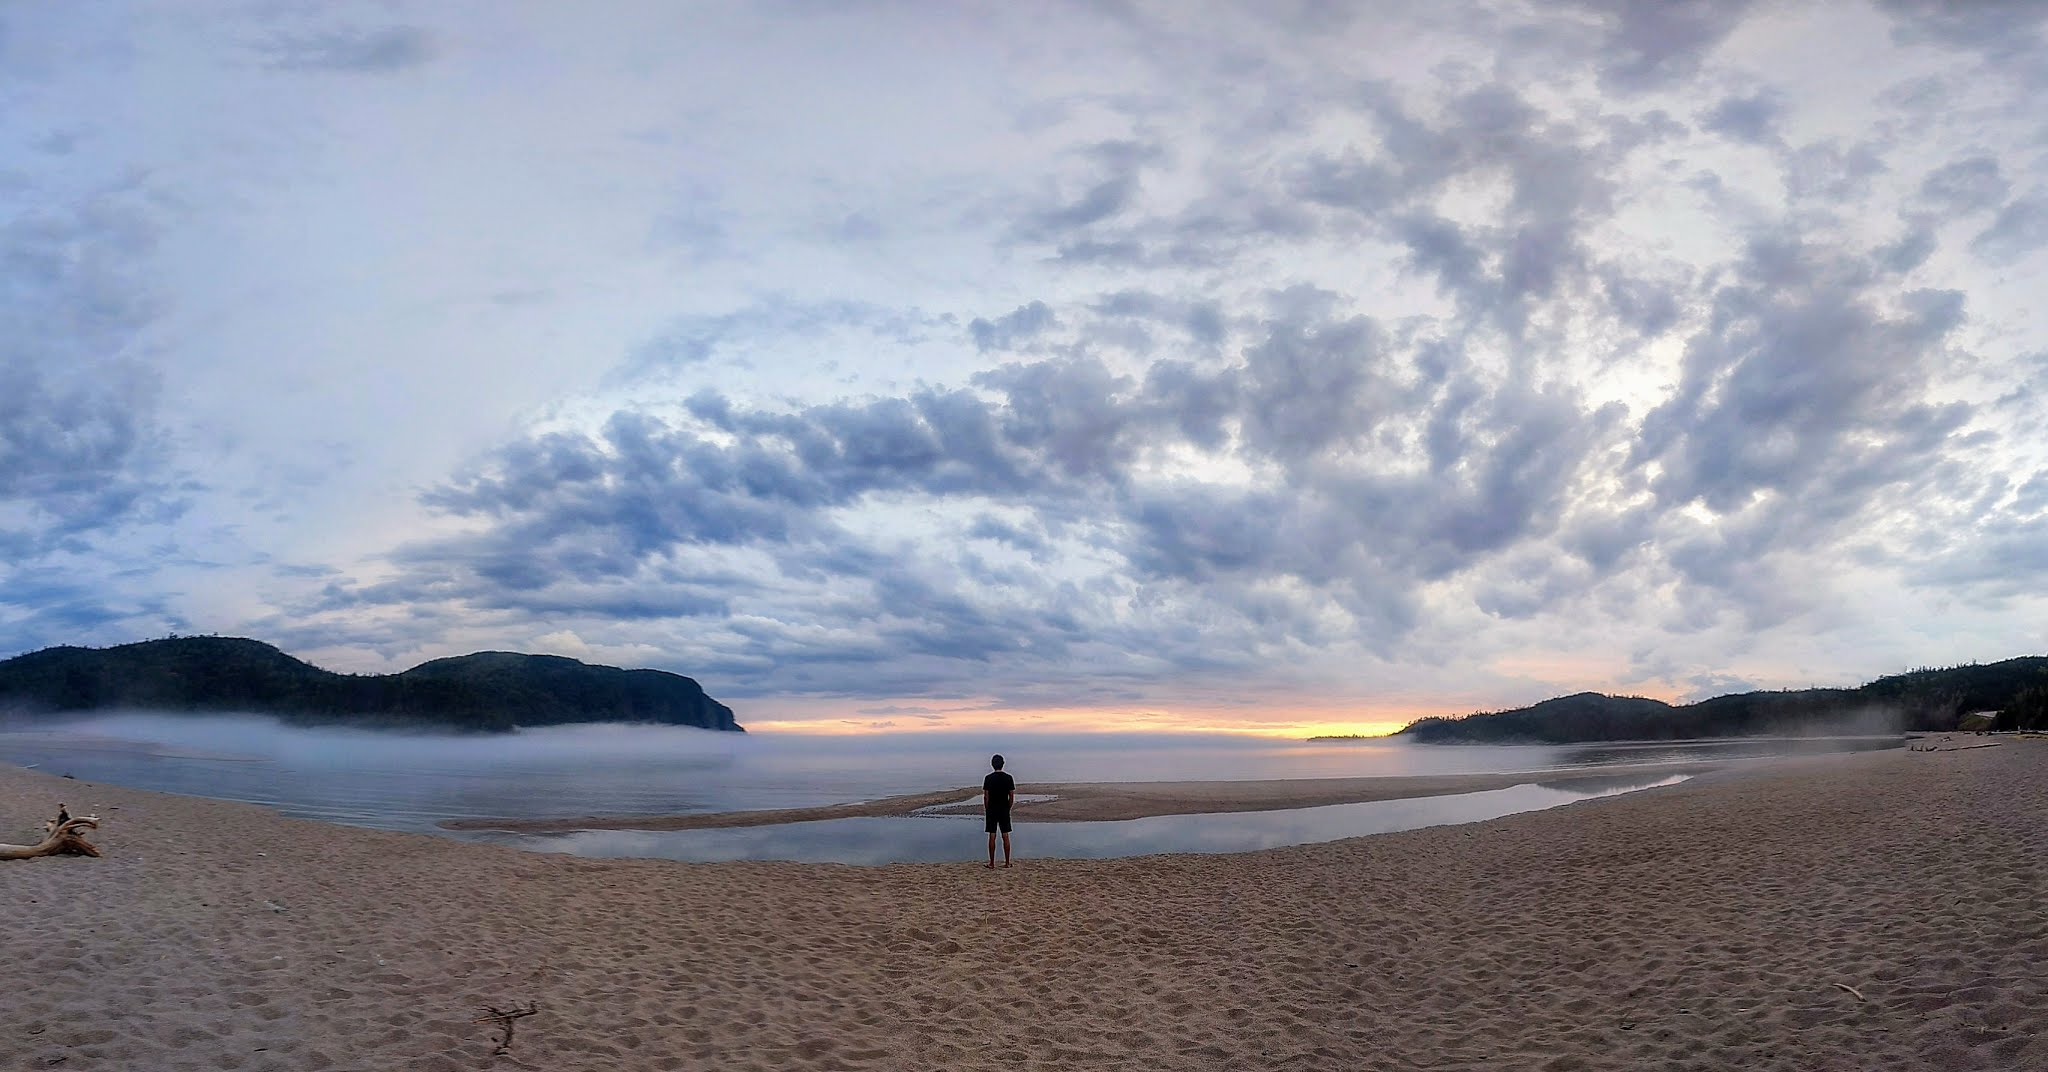 The stunning Old Woman Bay at sunset on the shores of Lake Superior.